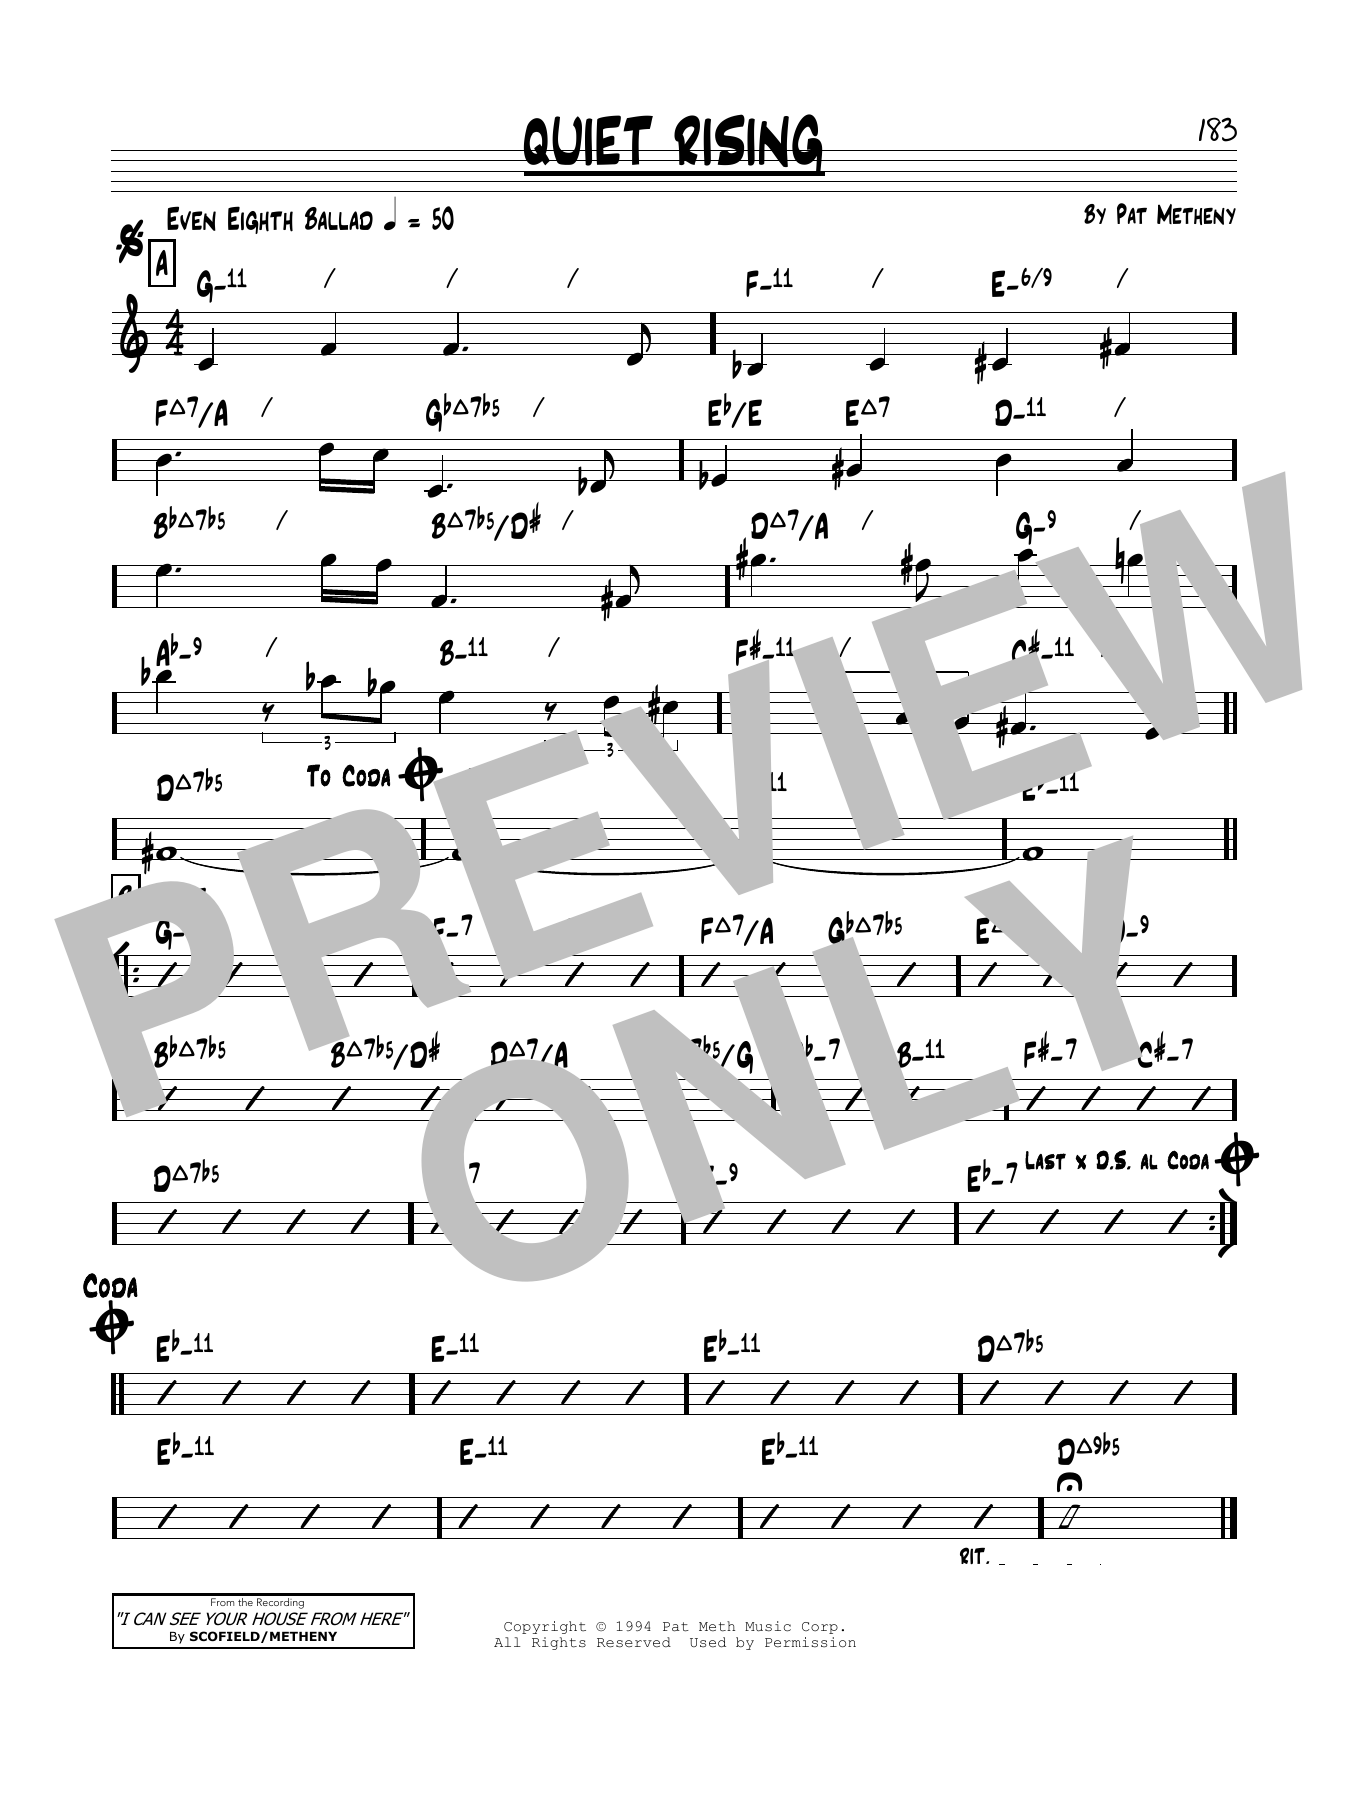 Quiet Rising Sheet Music